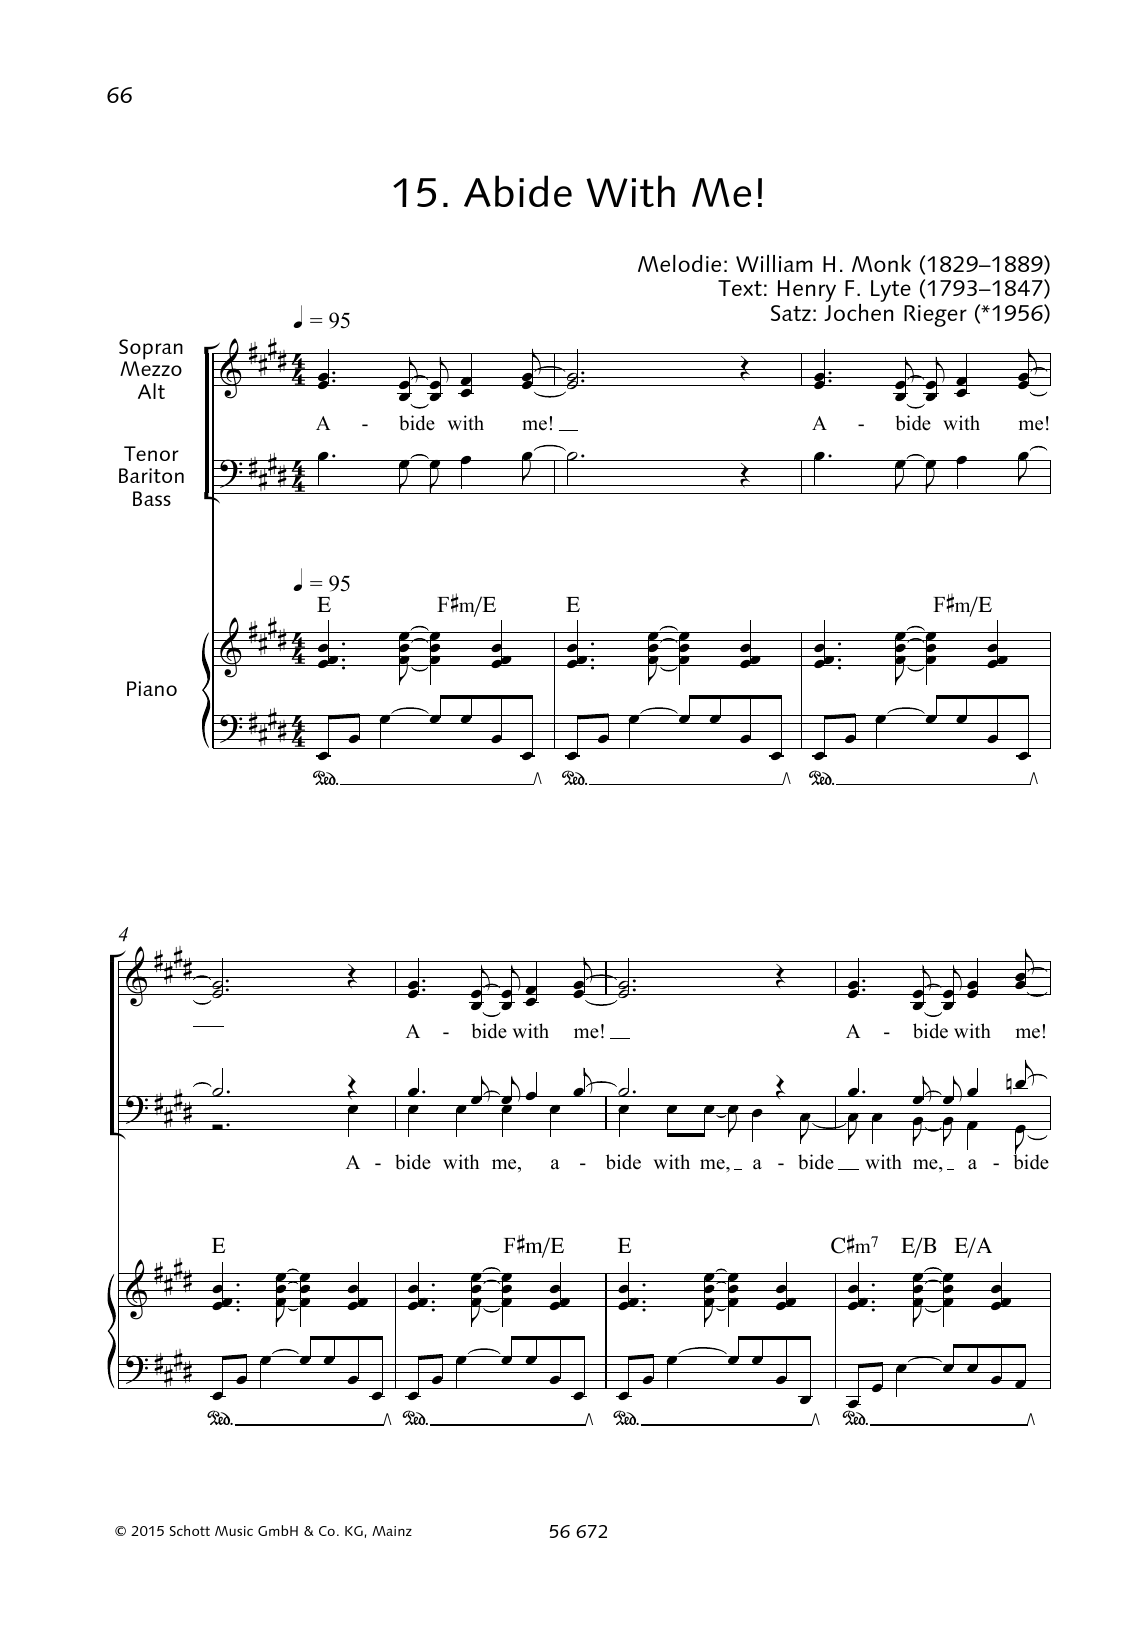 Abide With Me! Sheet Music